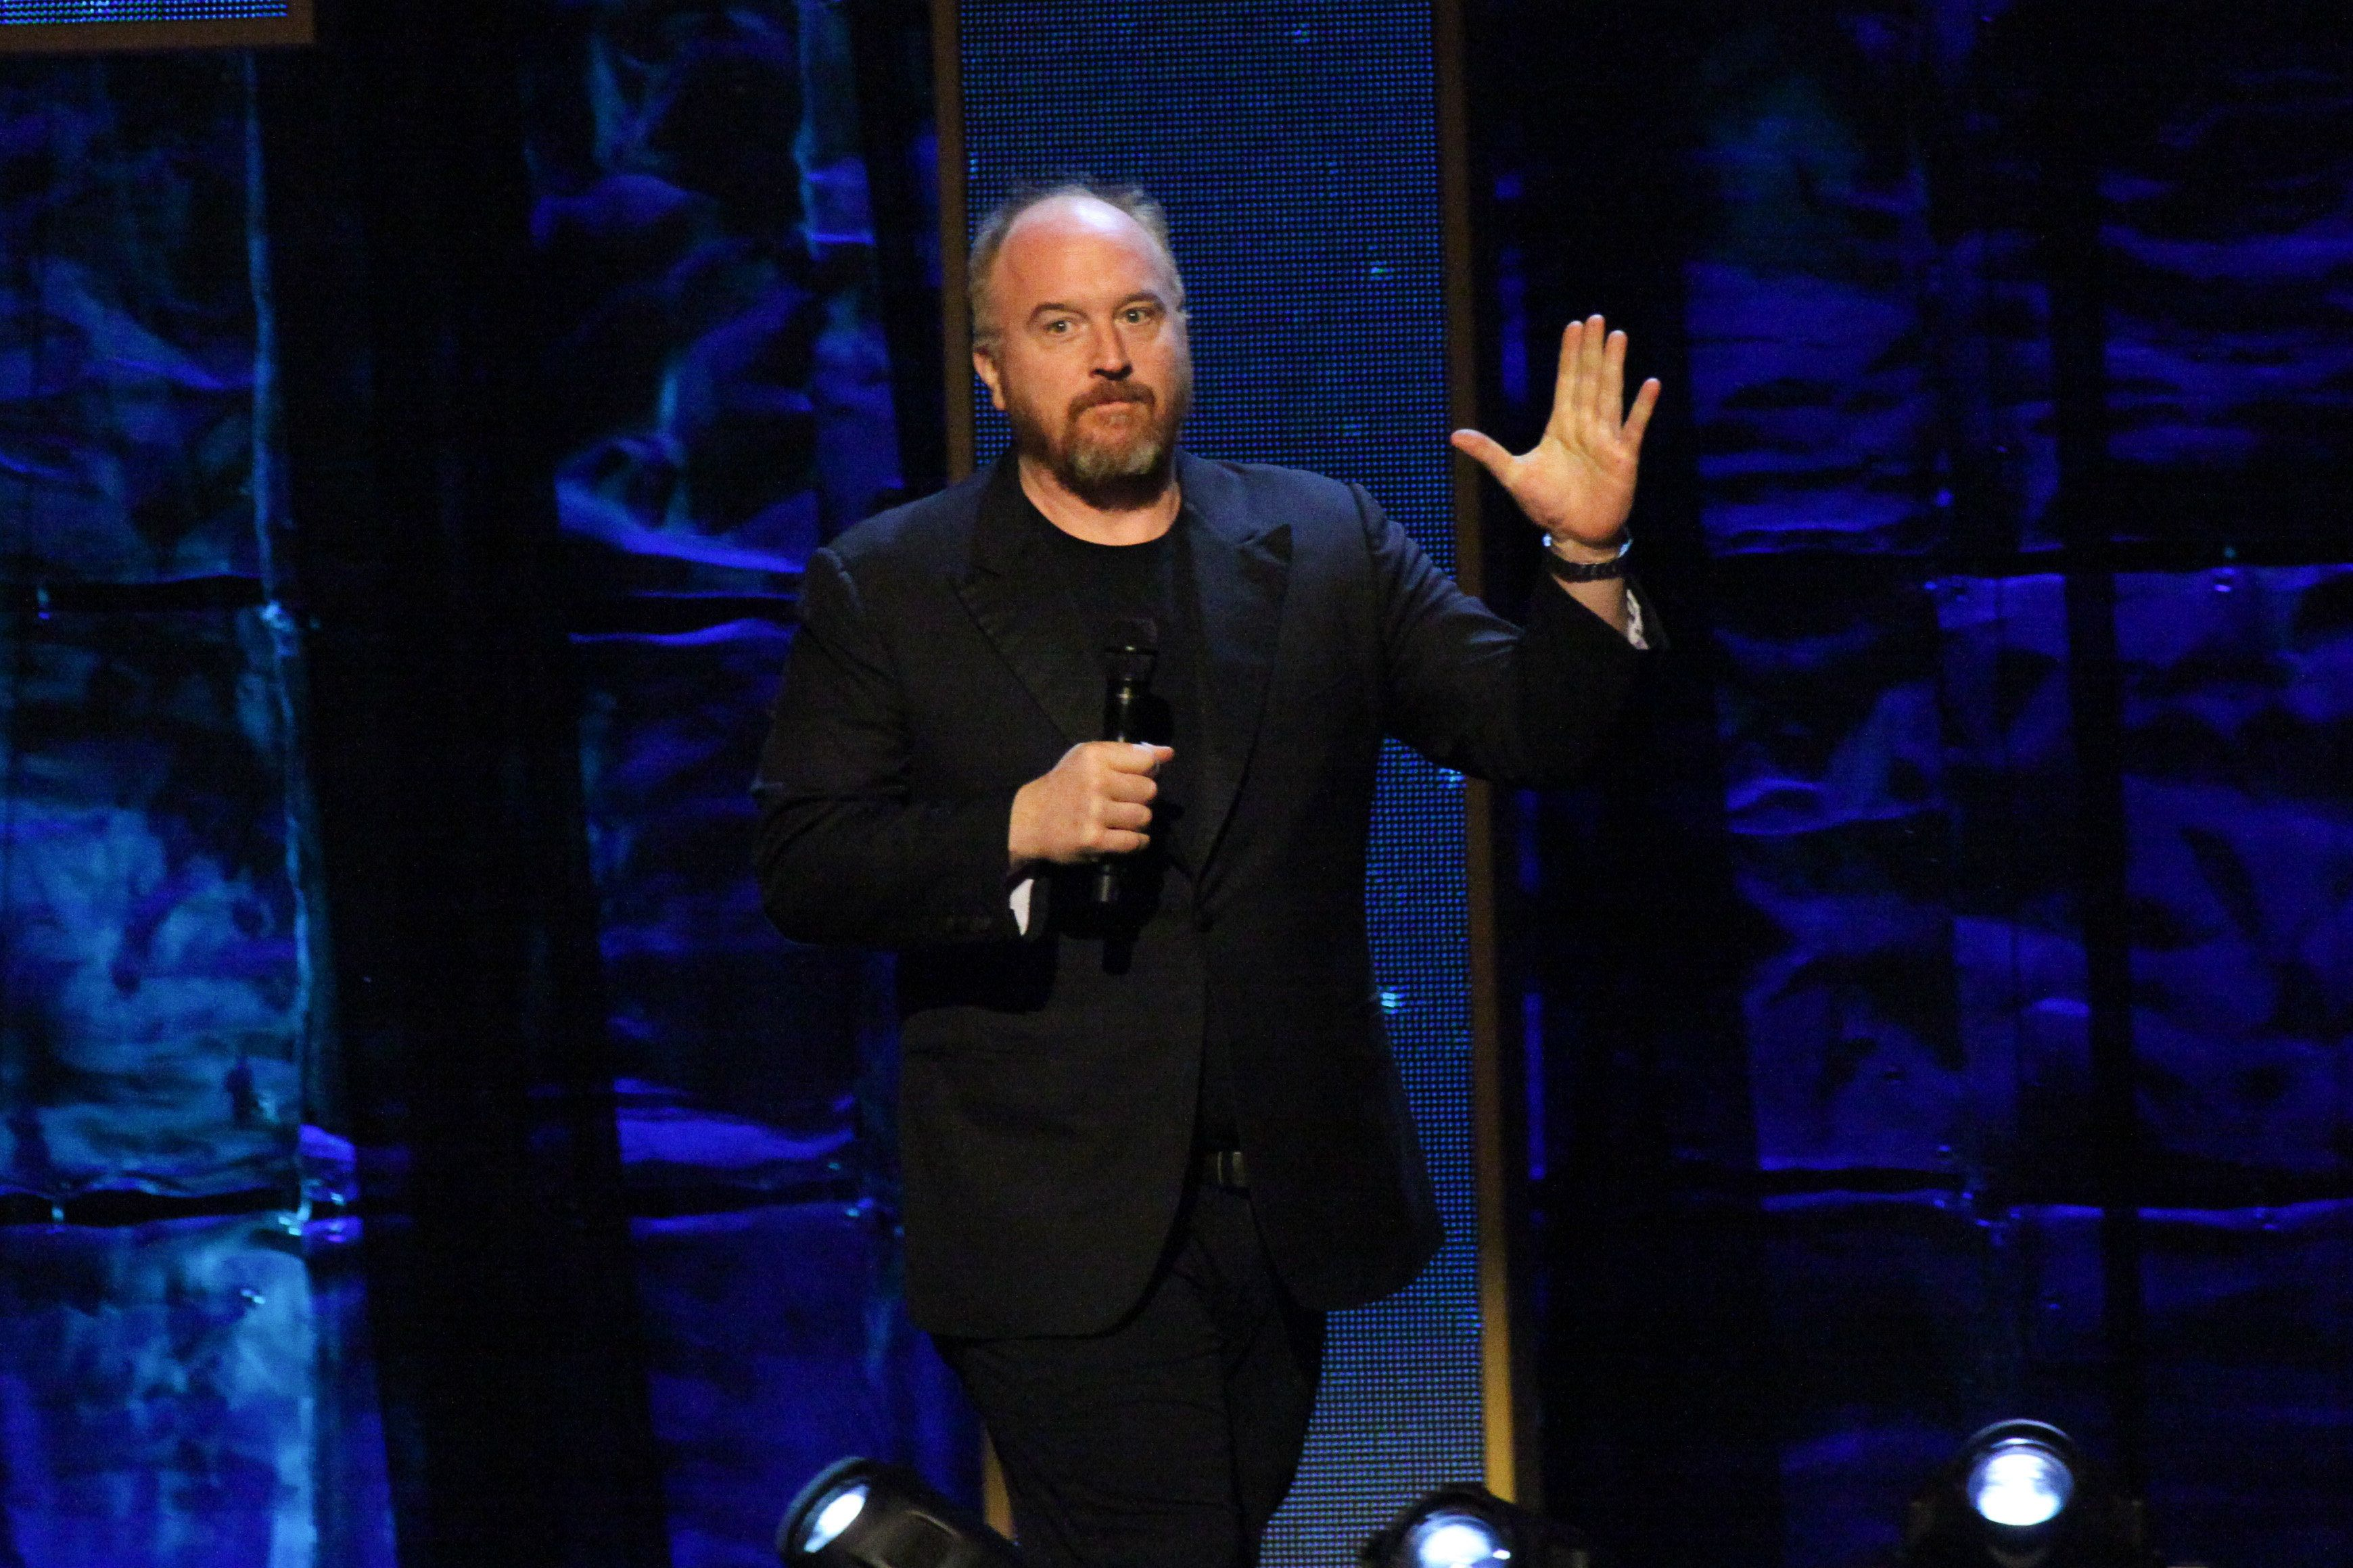 Louis C.K. faced scrutiny for masturbating in front of female comedians, which he admitted to amid the...